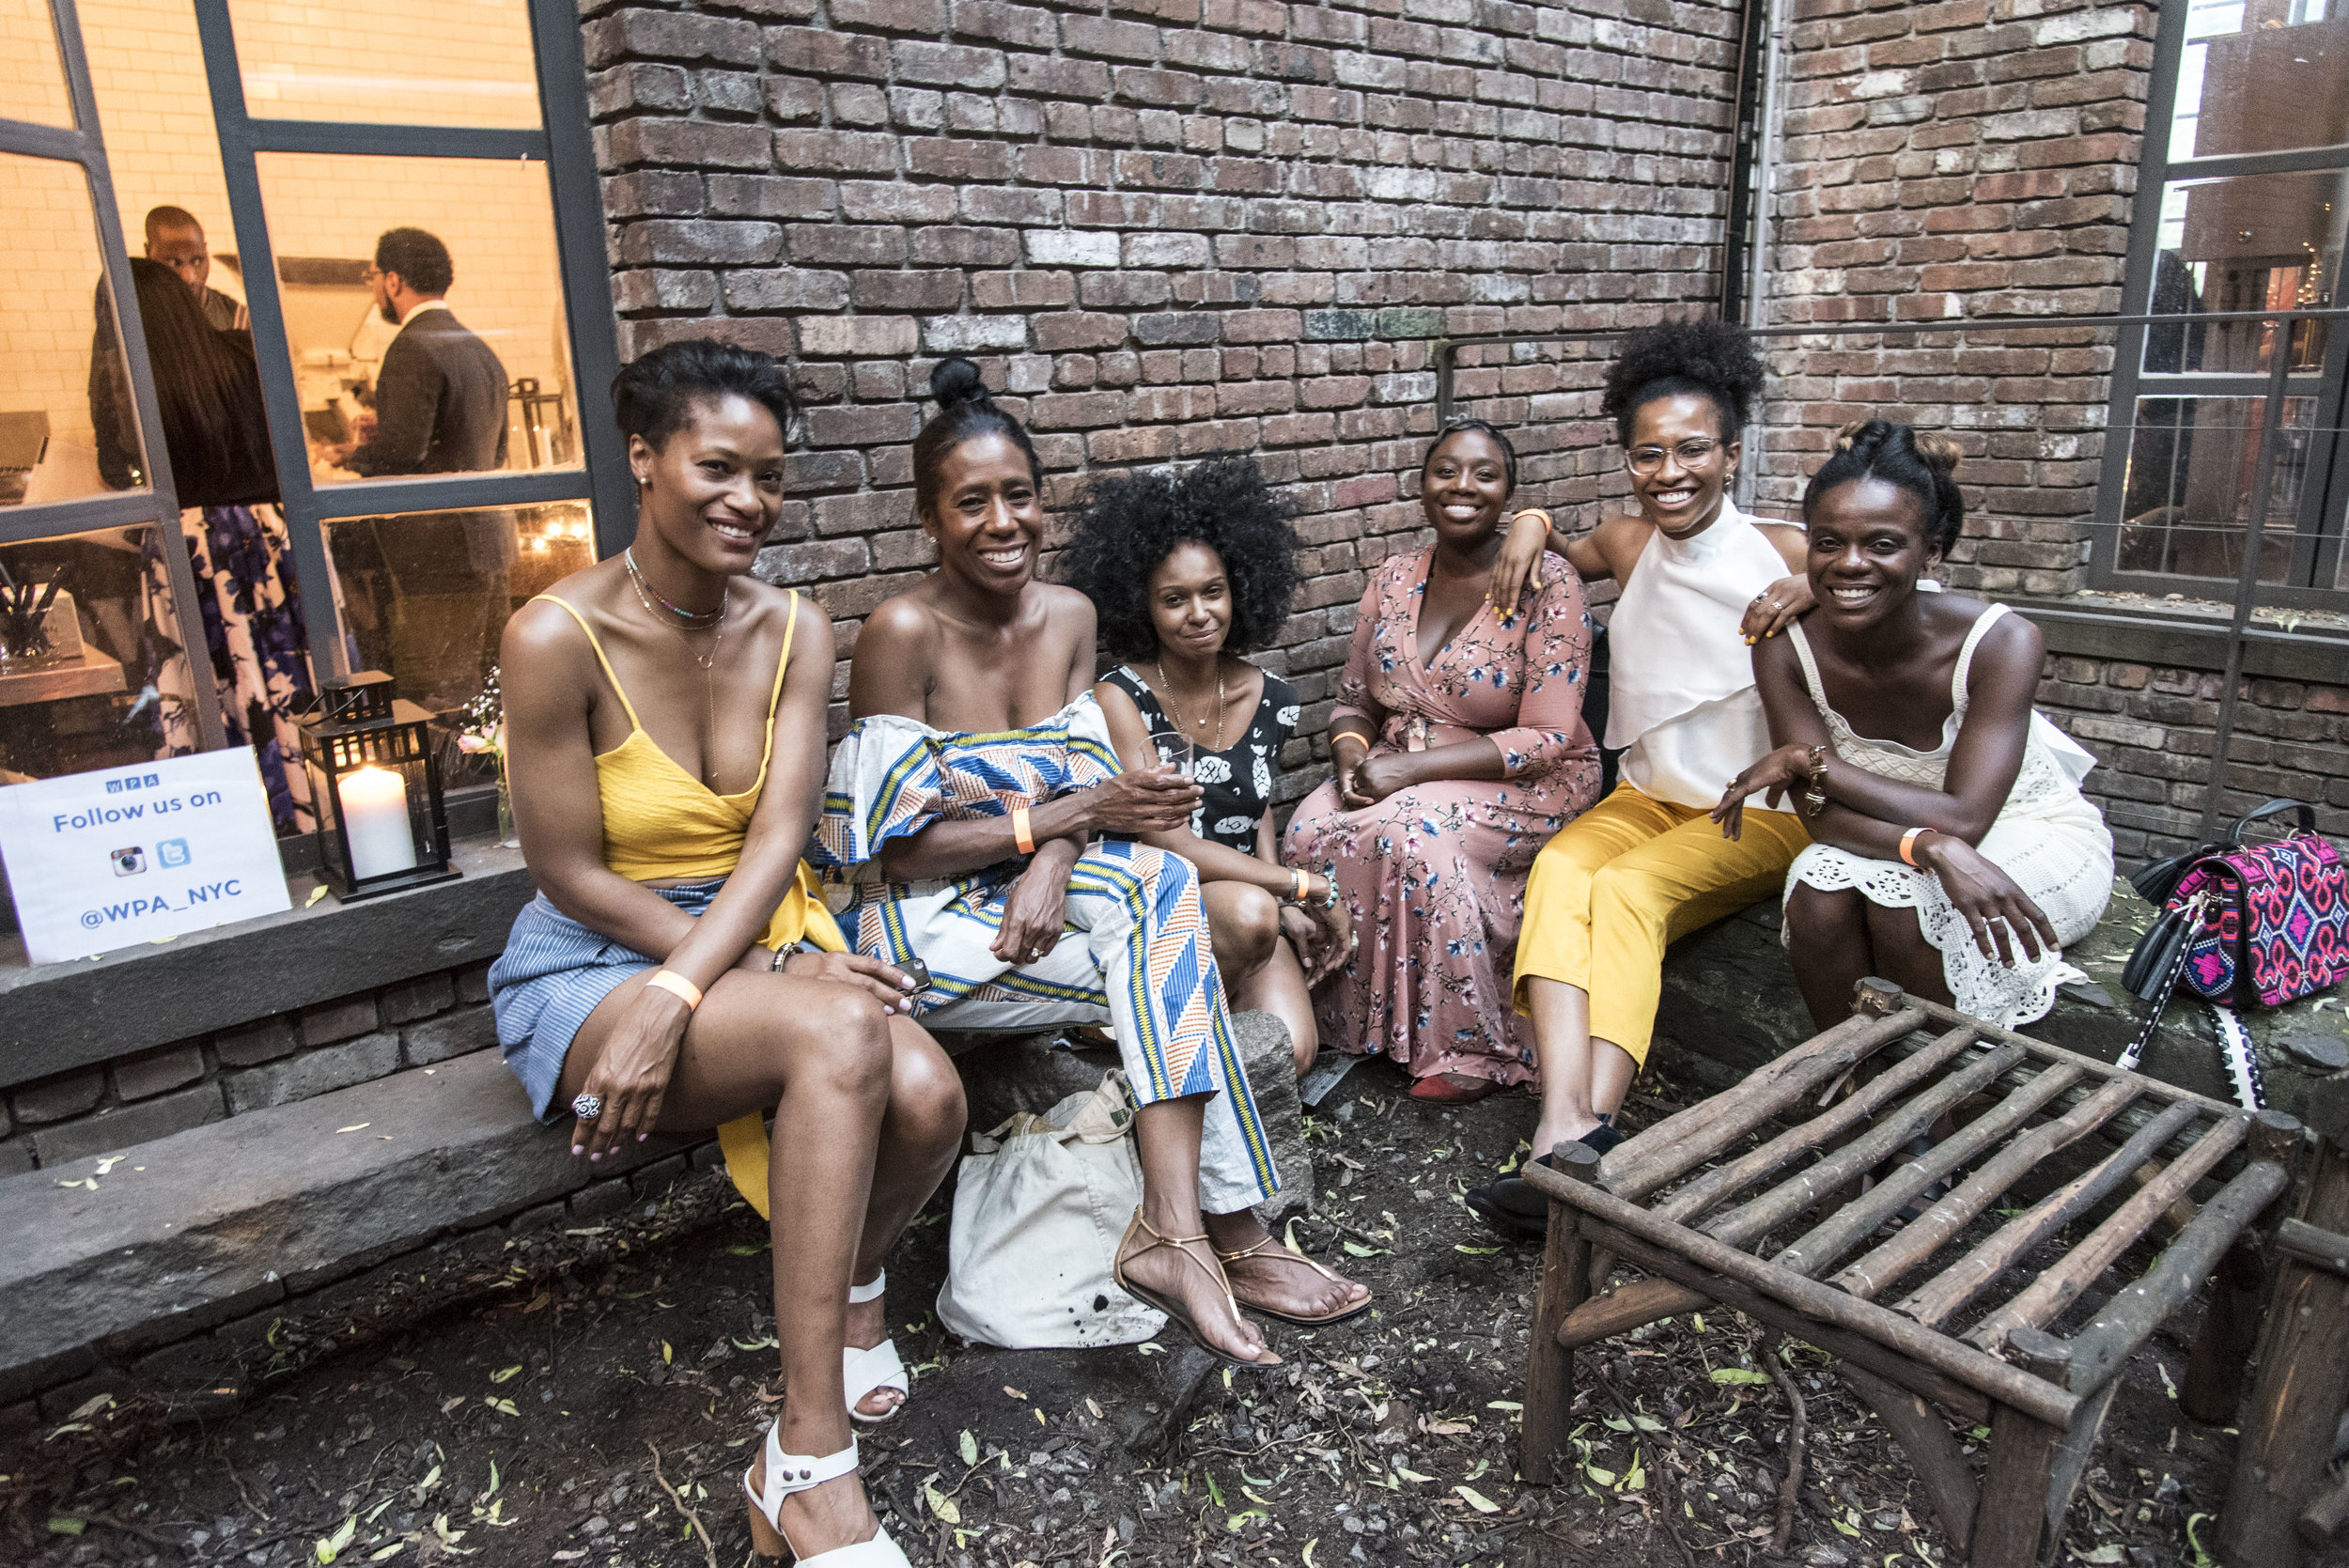 Ibada, our founder, (far right) and guests of the Women's Prison Association attend the annual WPA Summer Soiree hosted by Widow Jane Distillery in Red Hook, Brooklyn. Photo: Mambu Bayoh. Courtesy of the Women's Prison Association.